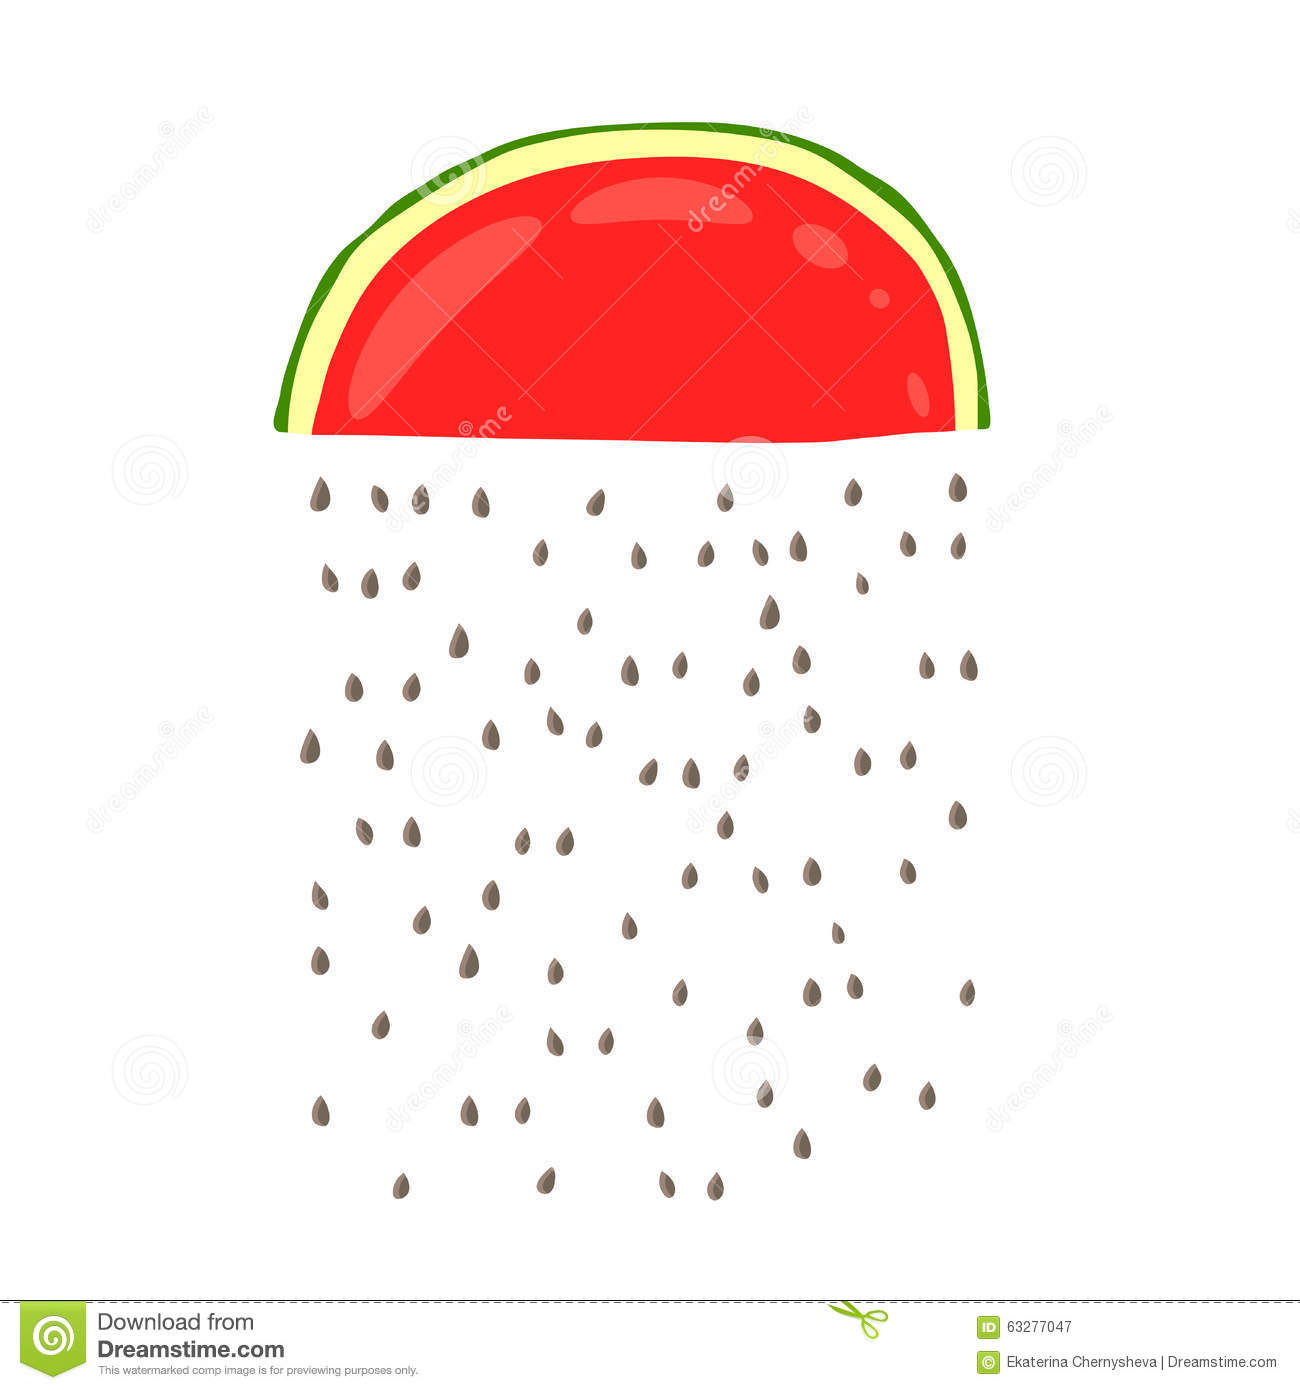 Watermelon Seeds Clipart (37+).